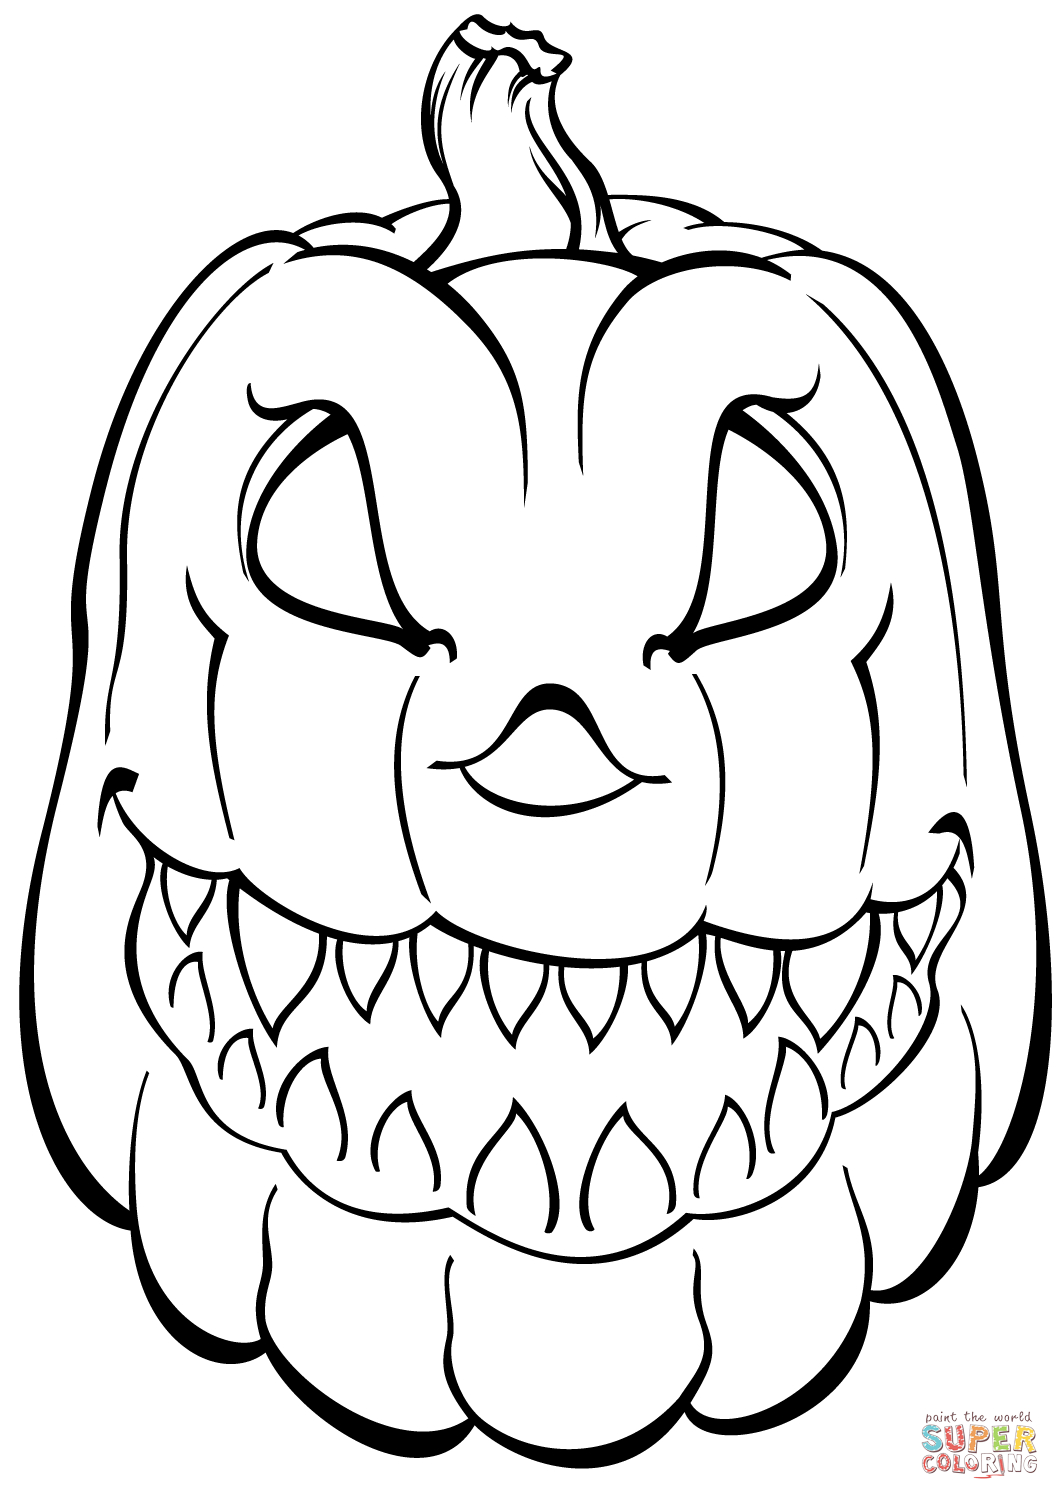 Scary Pumpkin Coloring Page   Free Printable Coloring Pages - Free Printable Pumpkin Coloring Pages